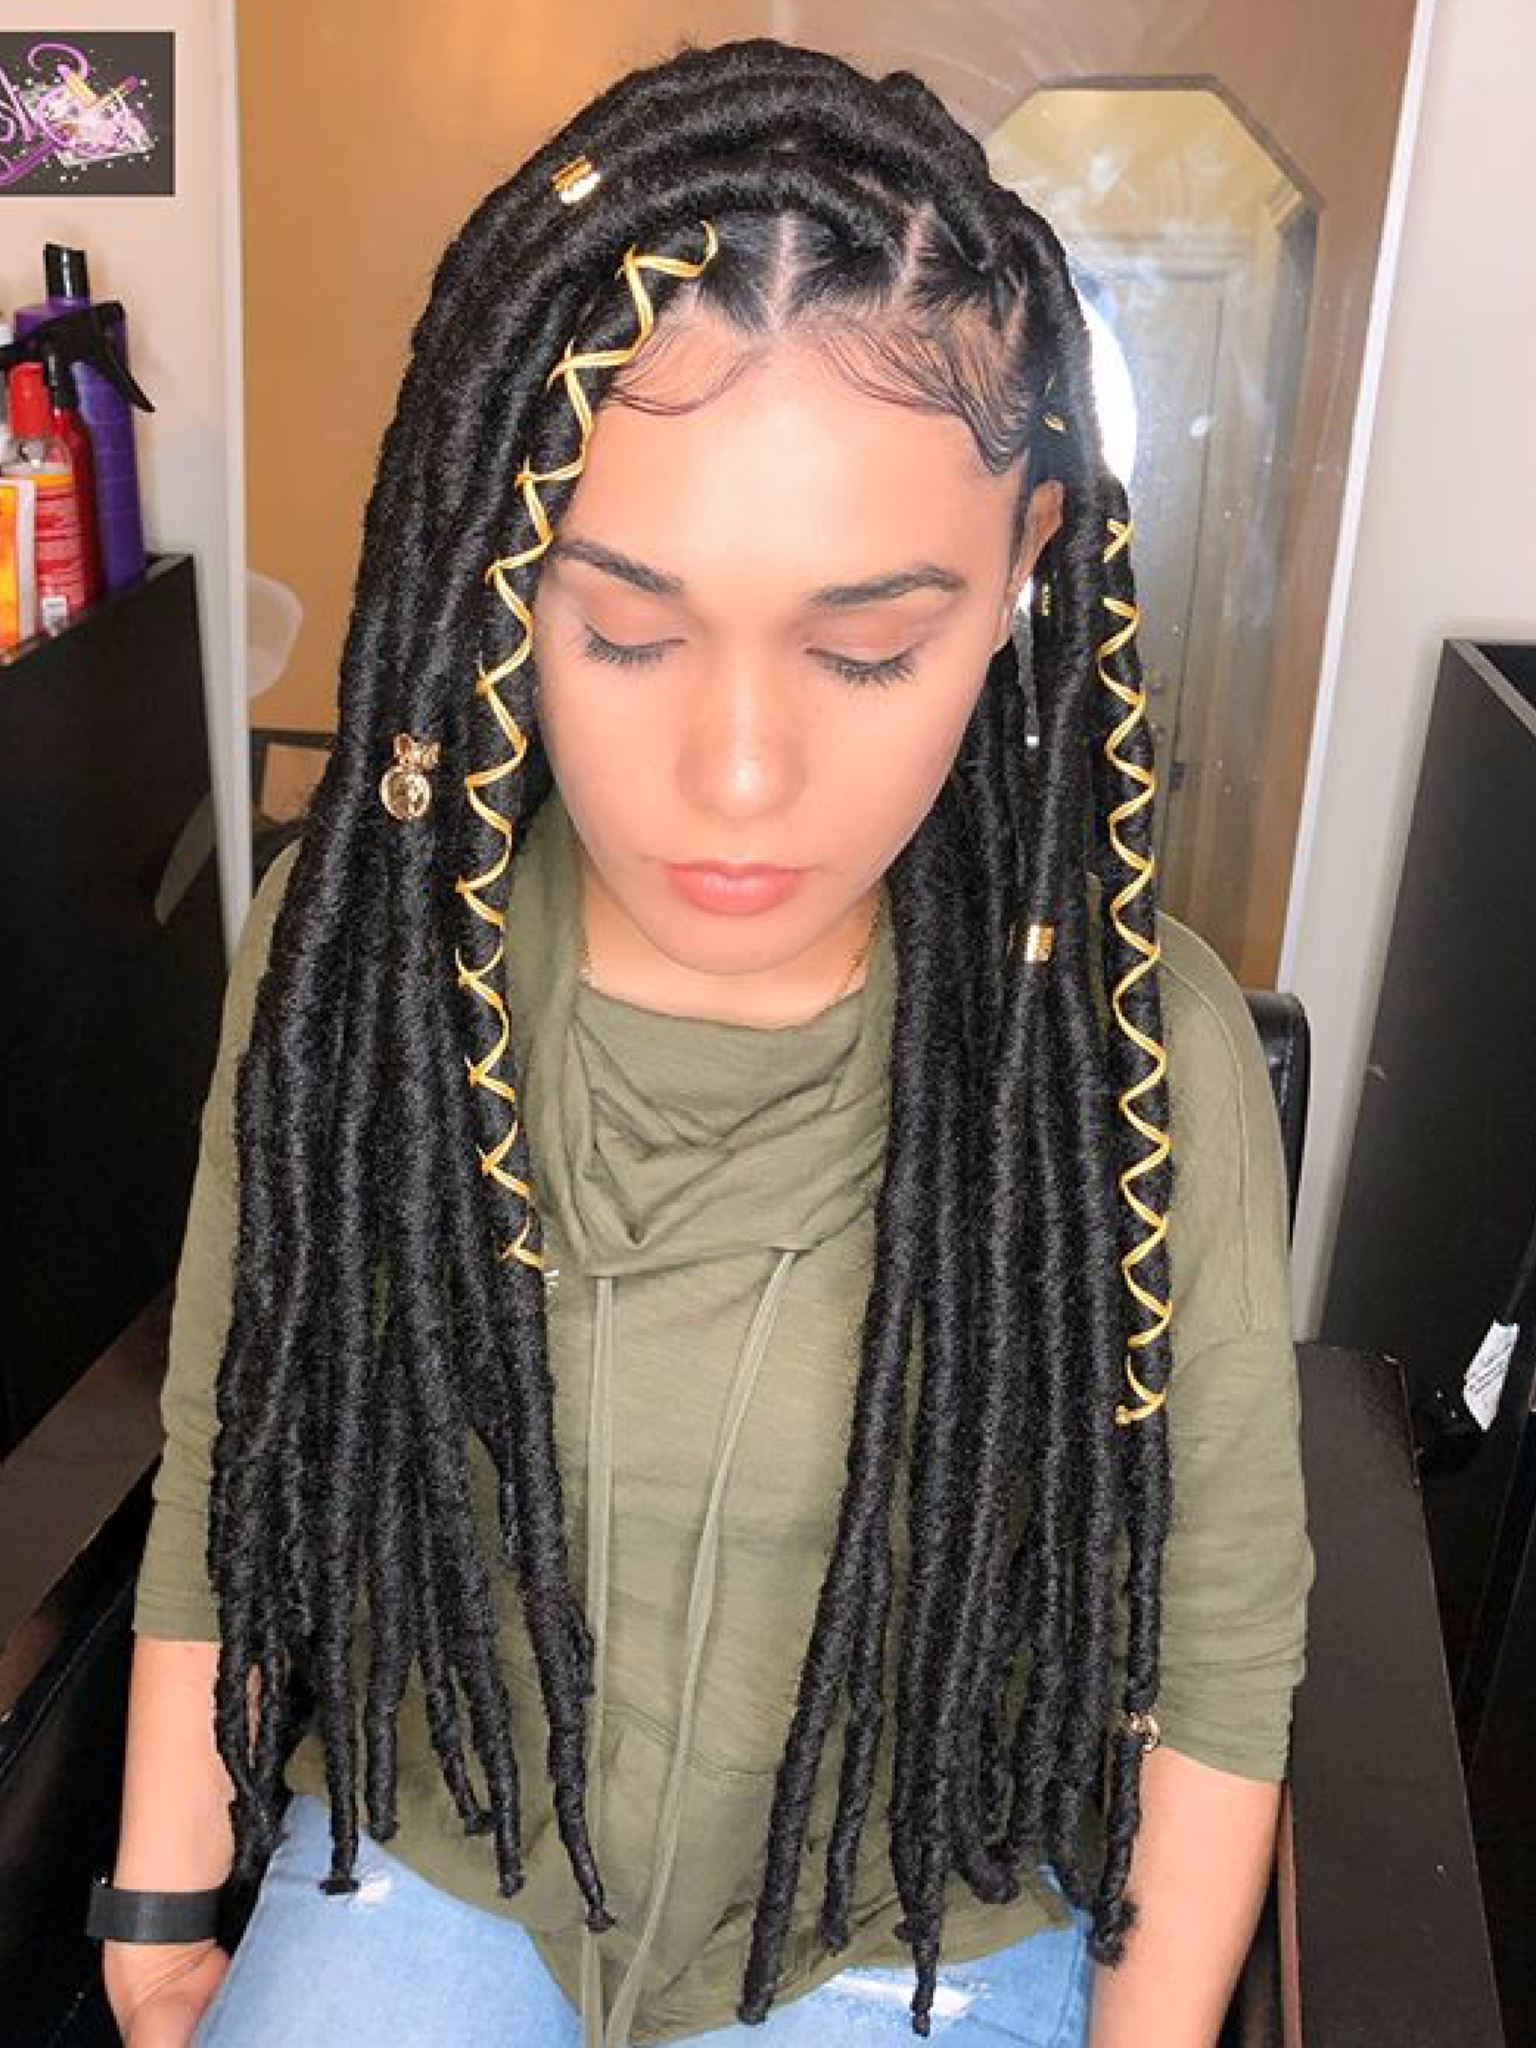 Faux Locs Hairstyles, Locs Intended For Recent Pins And Beads Hairstyles (View 15 of 20)